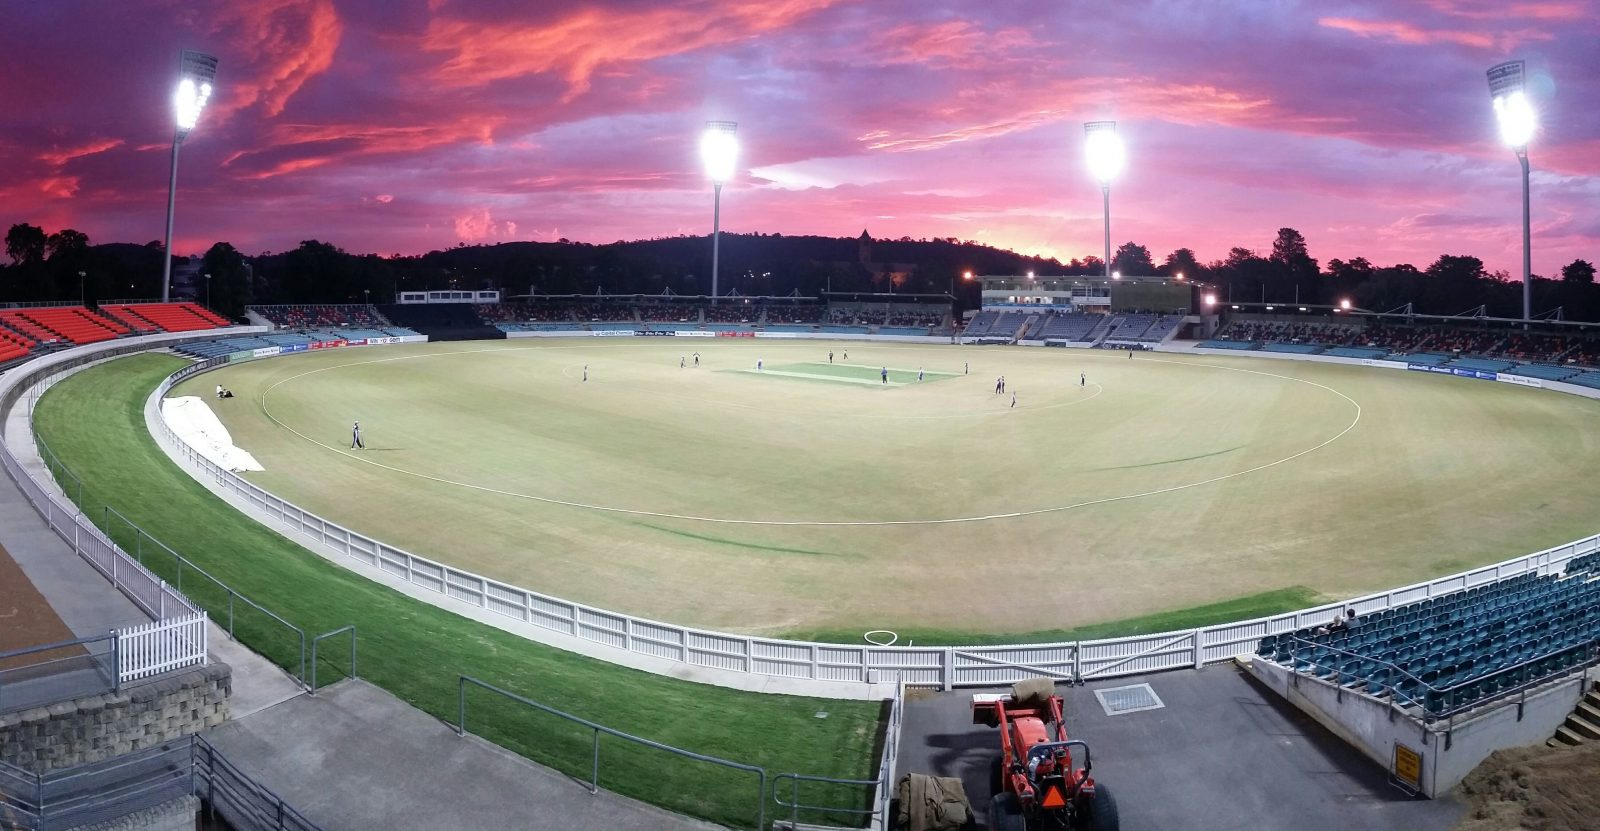 Manuka Oval in Canberra, ACT at sunset